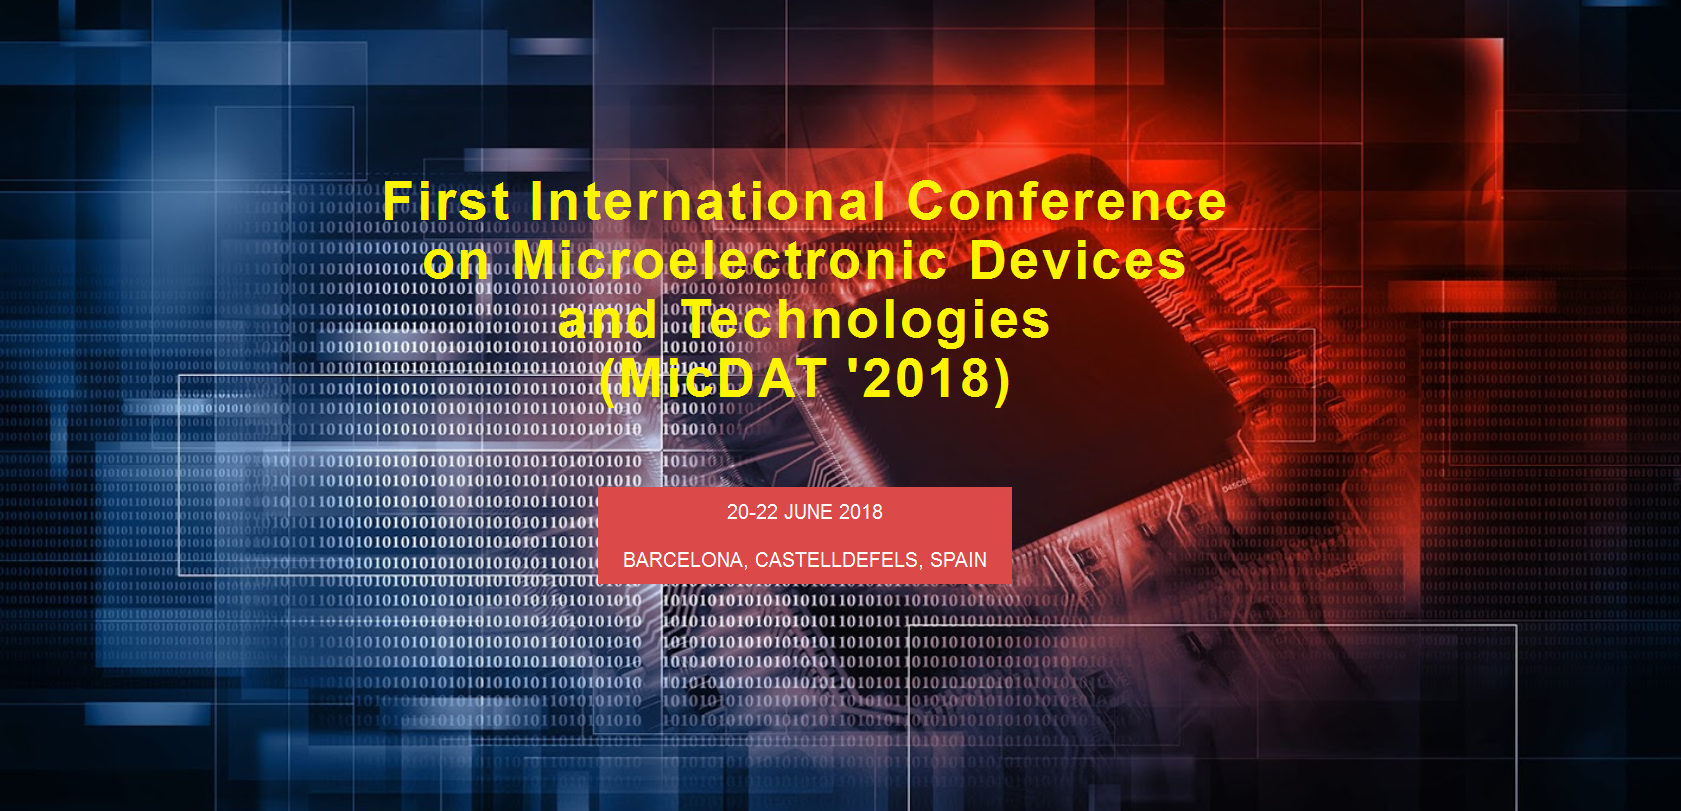 Sensors Events Design A Laserdiode Driver For Range Finder Applications Ee Times 2022 June 2018 First International Conferenceon Microelectronic Devicesand Technologies Micdat